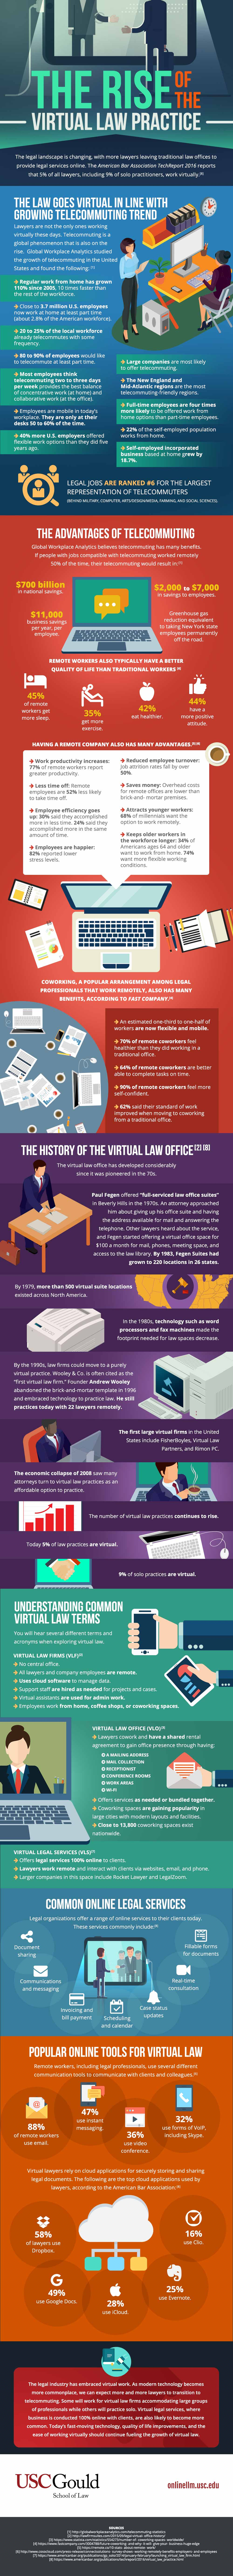 An infographic about the rise of virtual law practices by USC Gould School of Law.